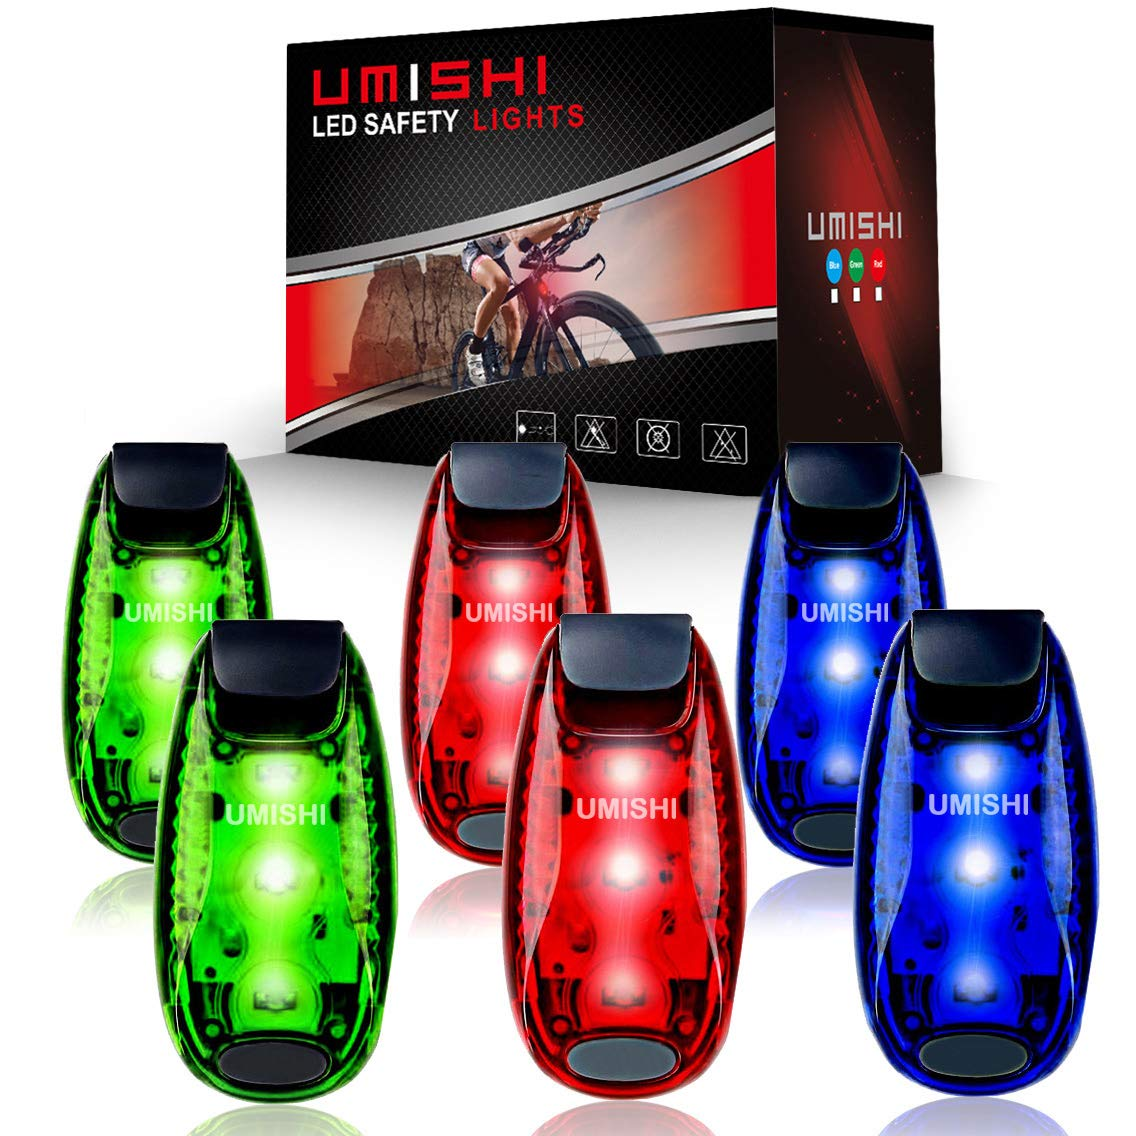 6-Pack LED Safety Light Strobe lights for Daytime Running Walking Bicycle Bike Kids Child Woman Dog Pet Runner Best Flashing Warning Clip on Small Reflective Set Flash Walk Night High Visibility by UMISHI